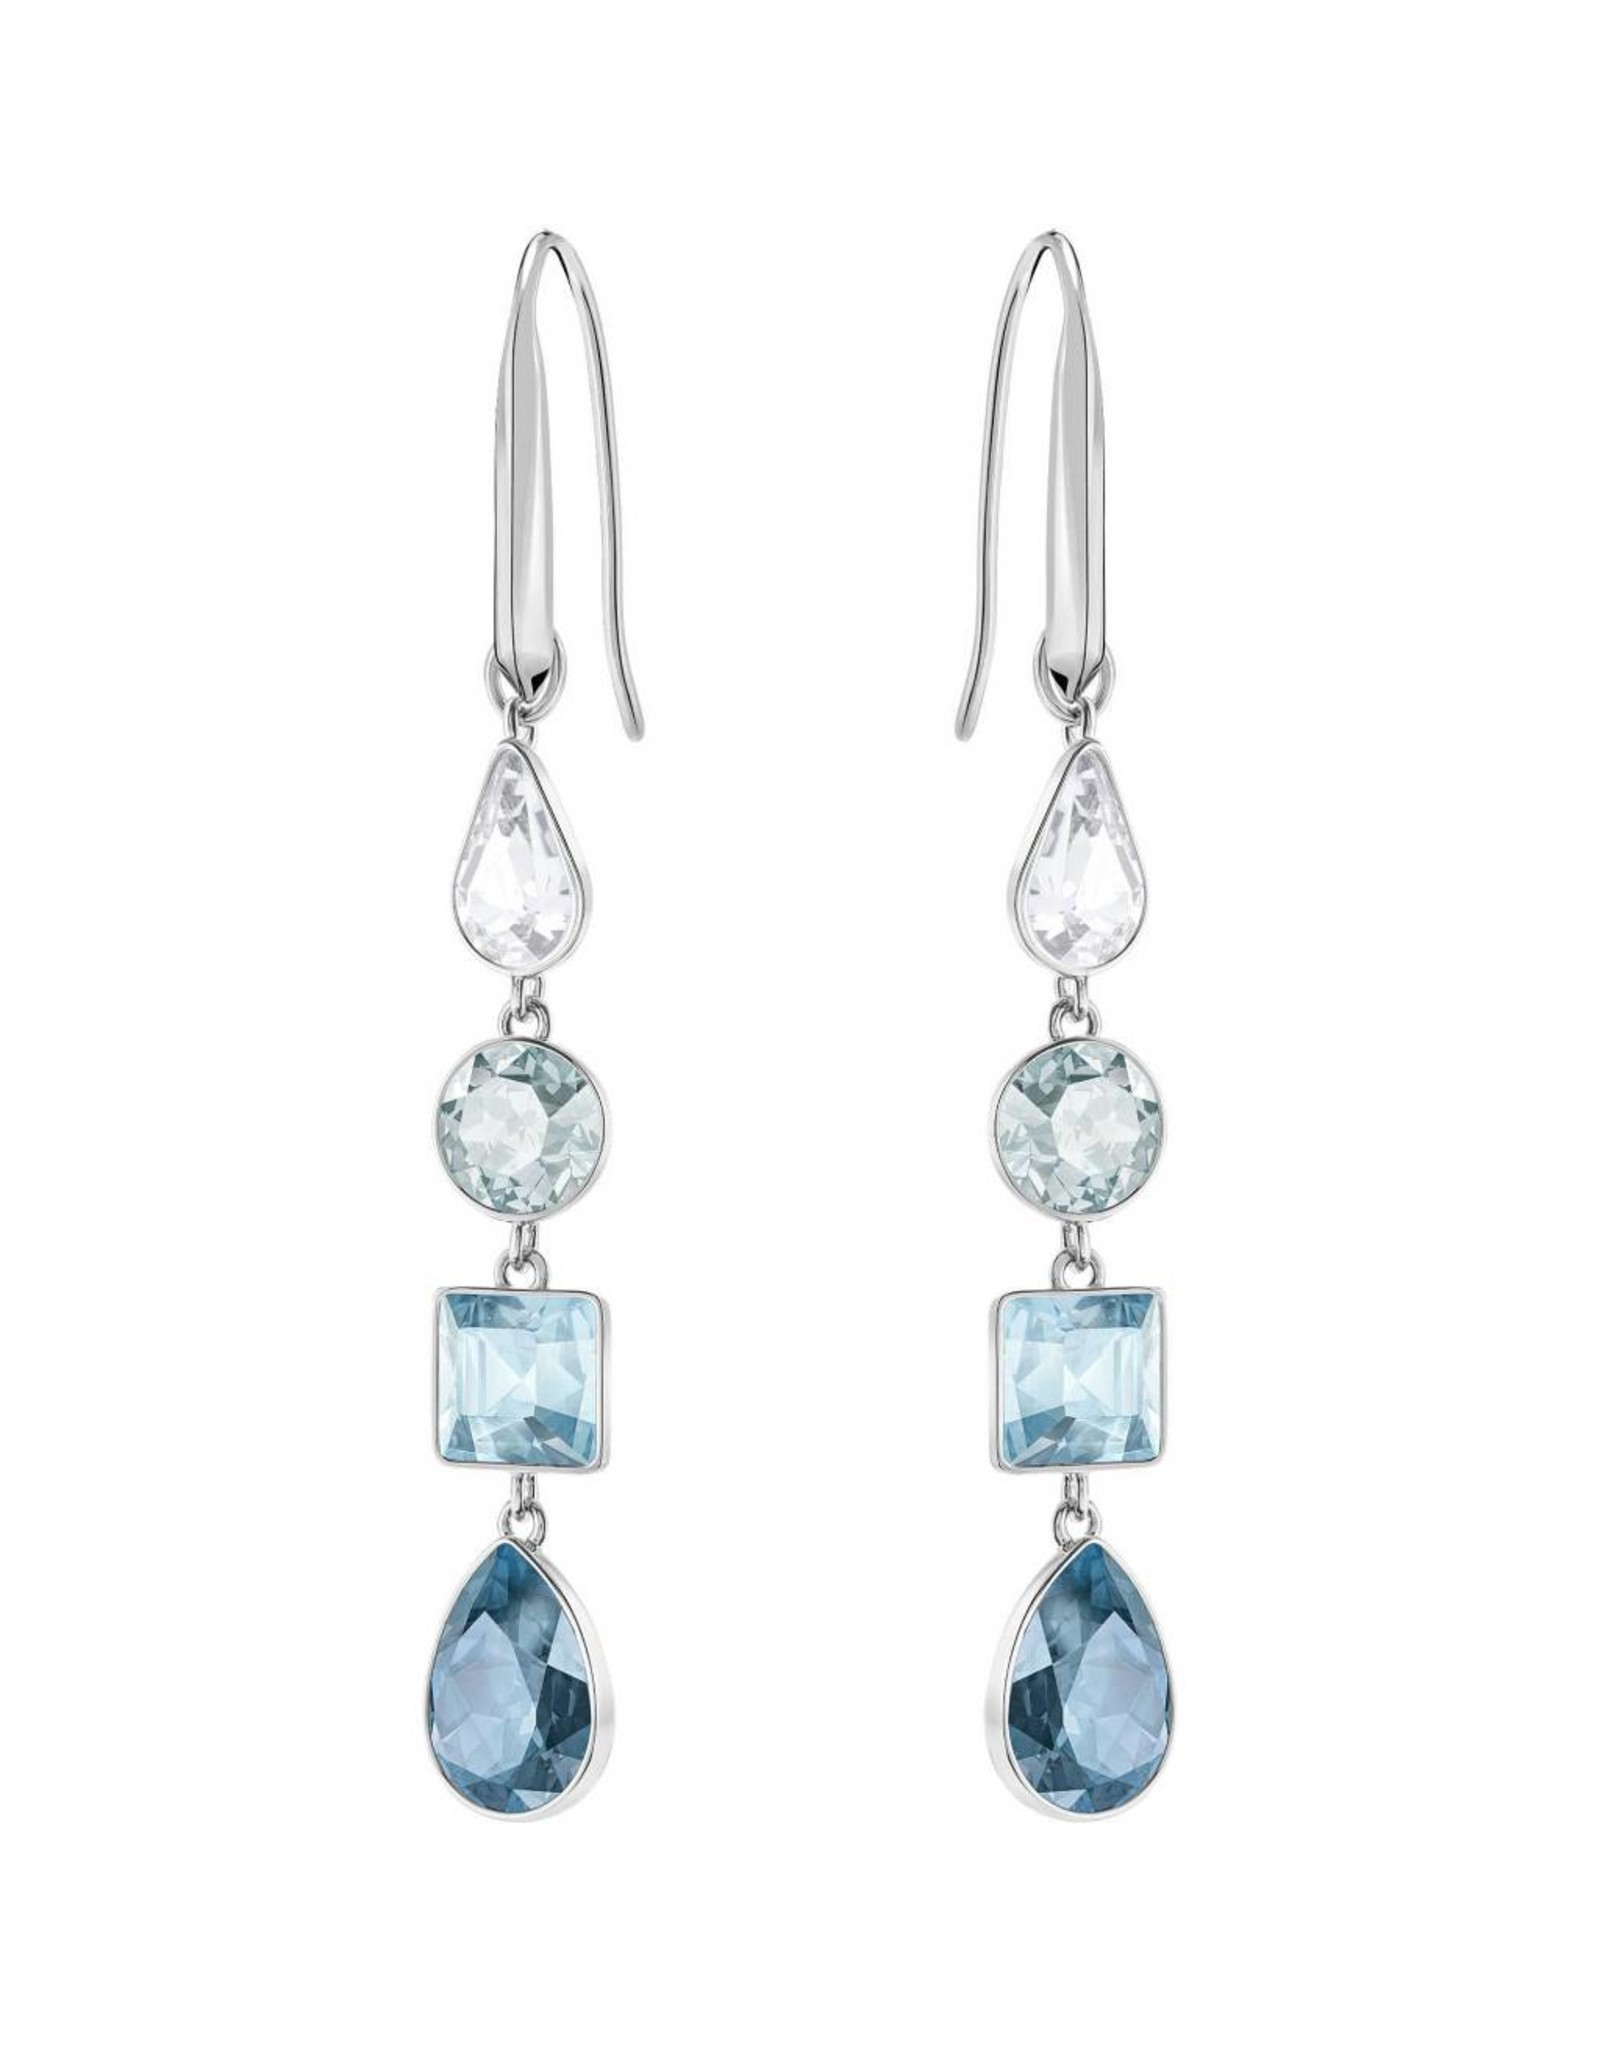 Swarovski Swarovski Lisanne Earrings